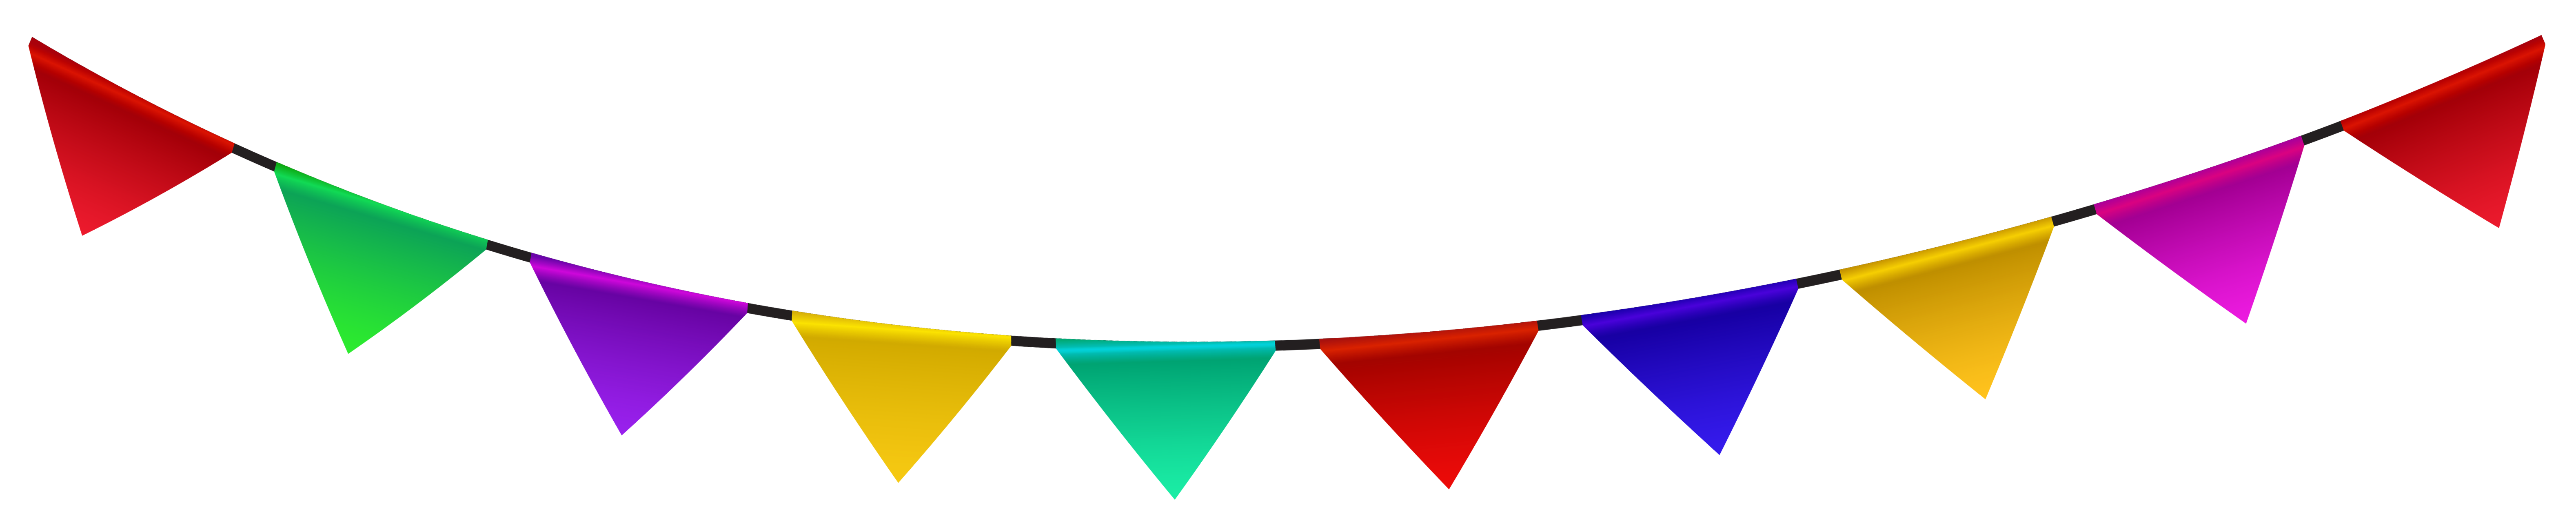 Triangle clipart streamer PNG Clipart size Decoration Gallery